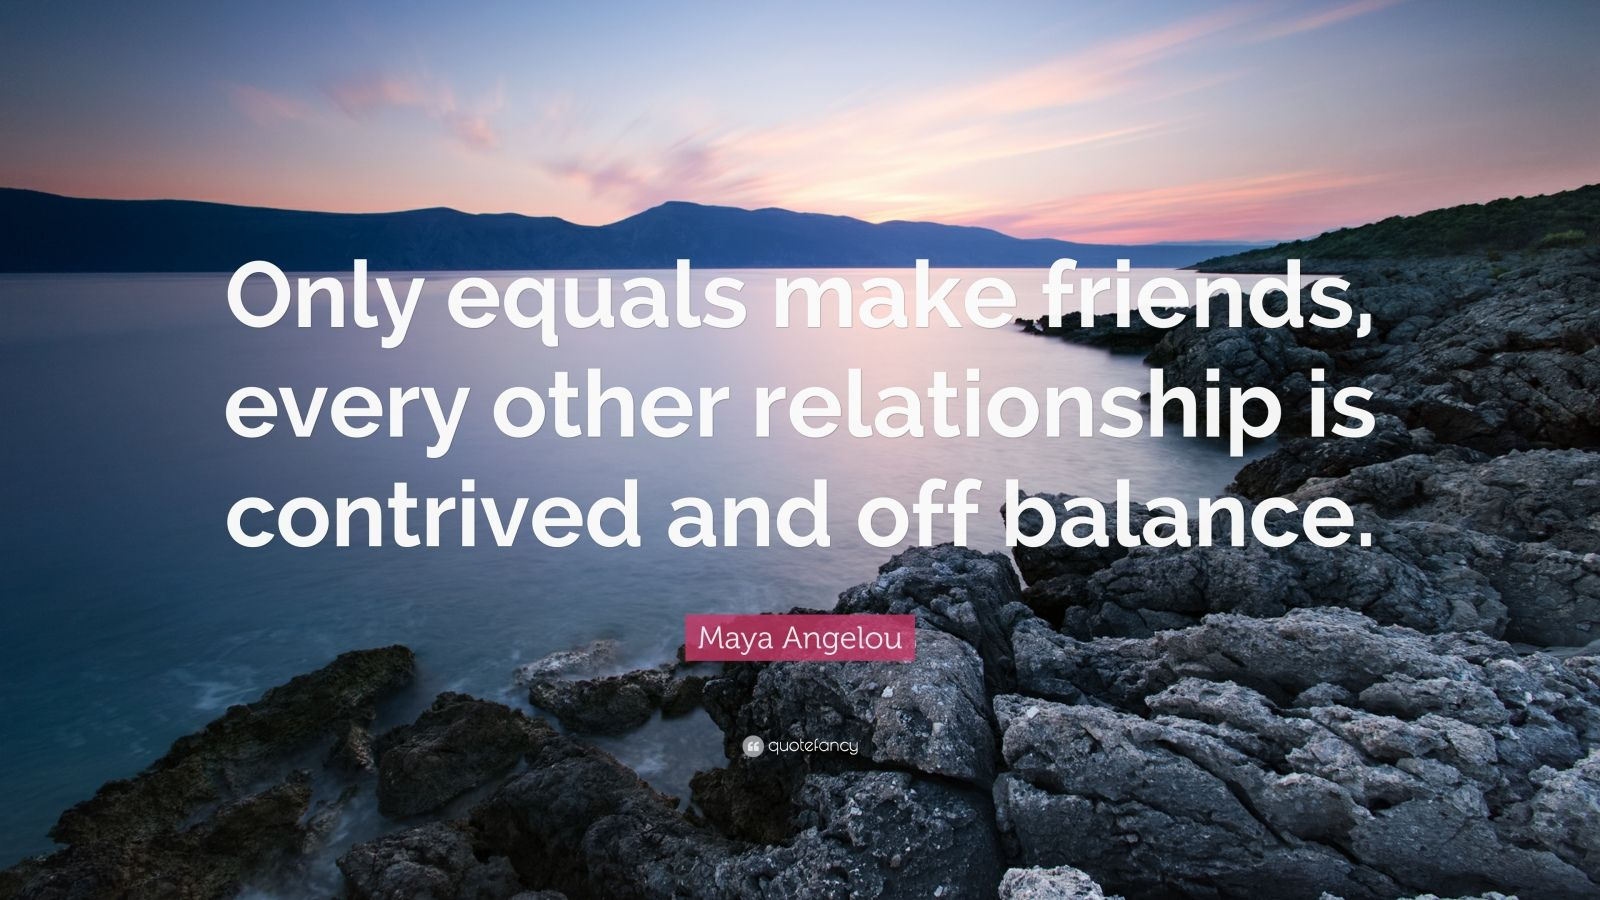 """Maya Angelou Quote: """"Only equals make friends, every other relationship is contrived and off balance."""""""